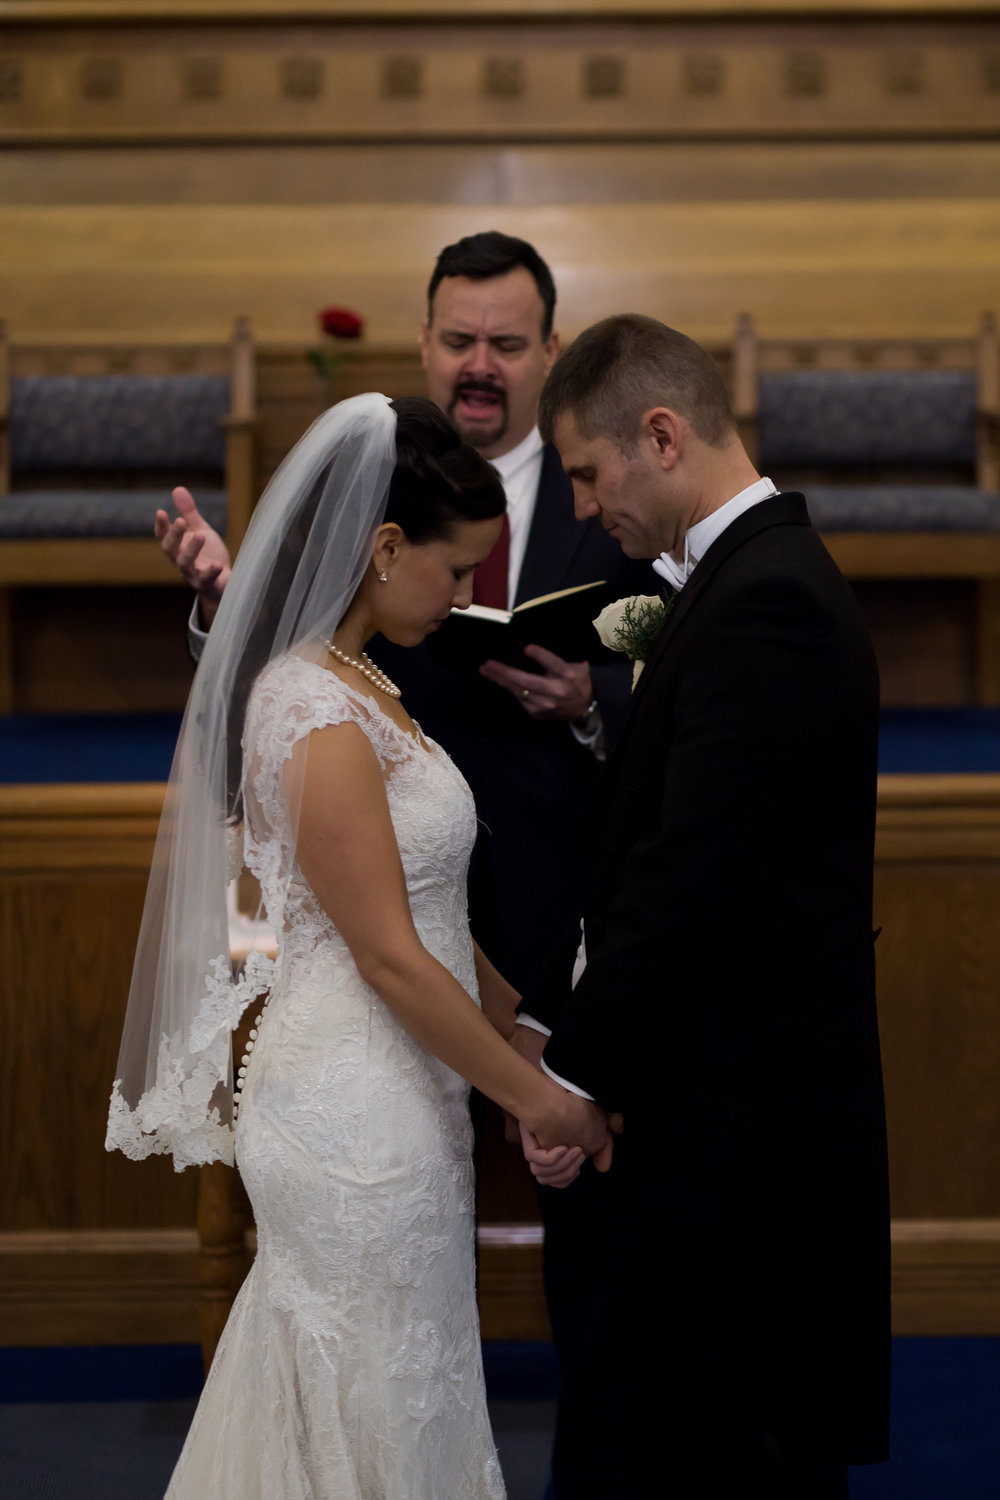 Bride and groom taking a blessing during their wedding at First Baptist Church in Colorado Springs Stacy Carosa Photography